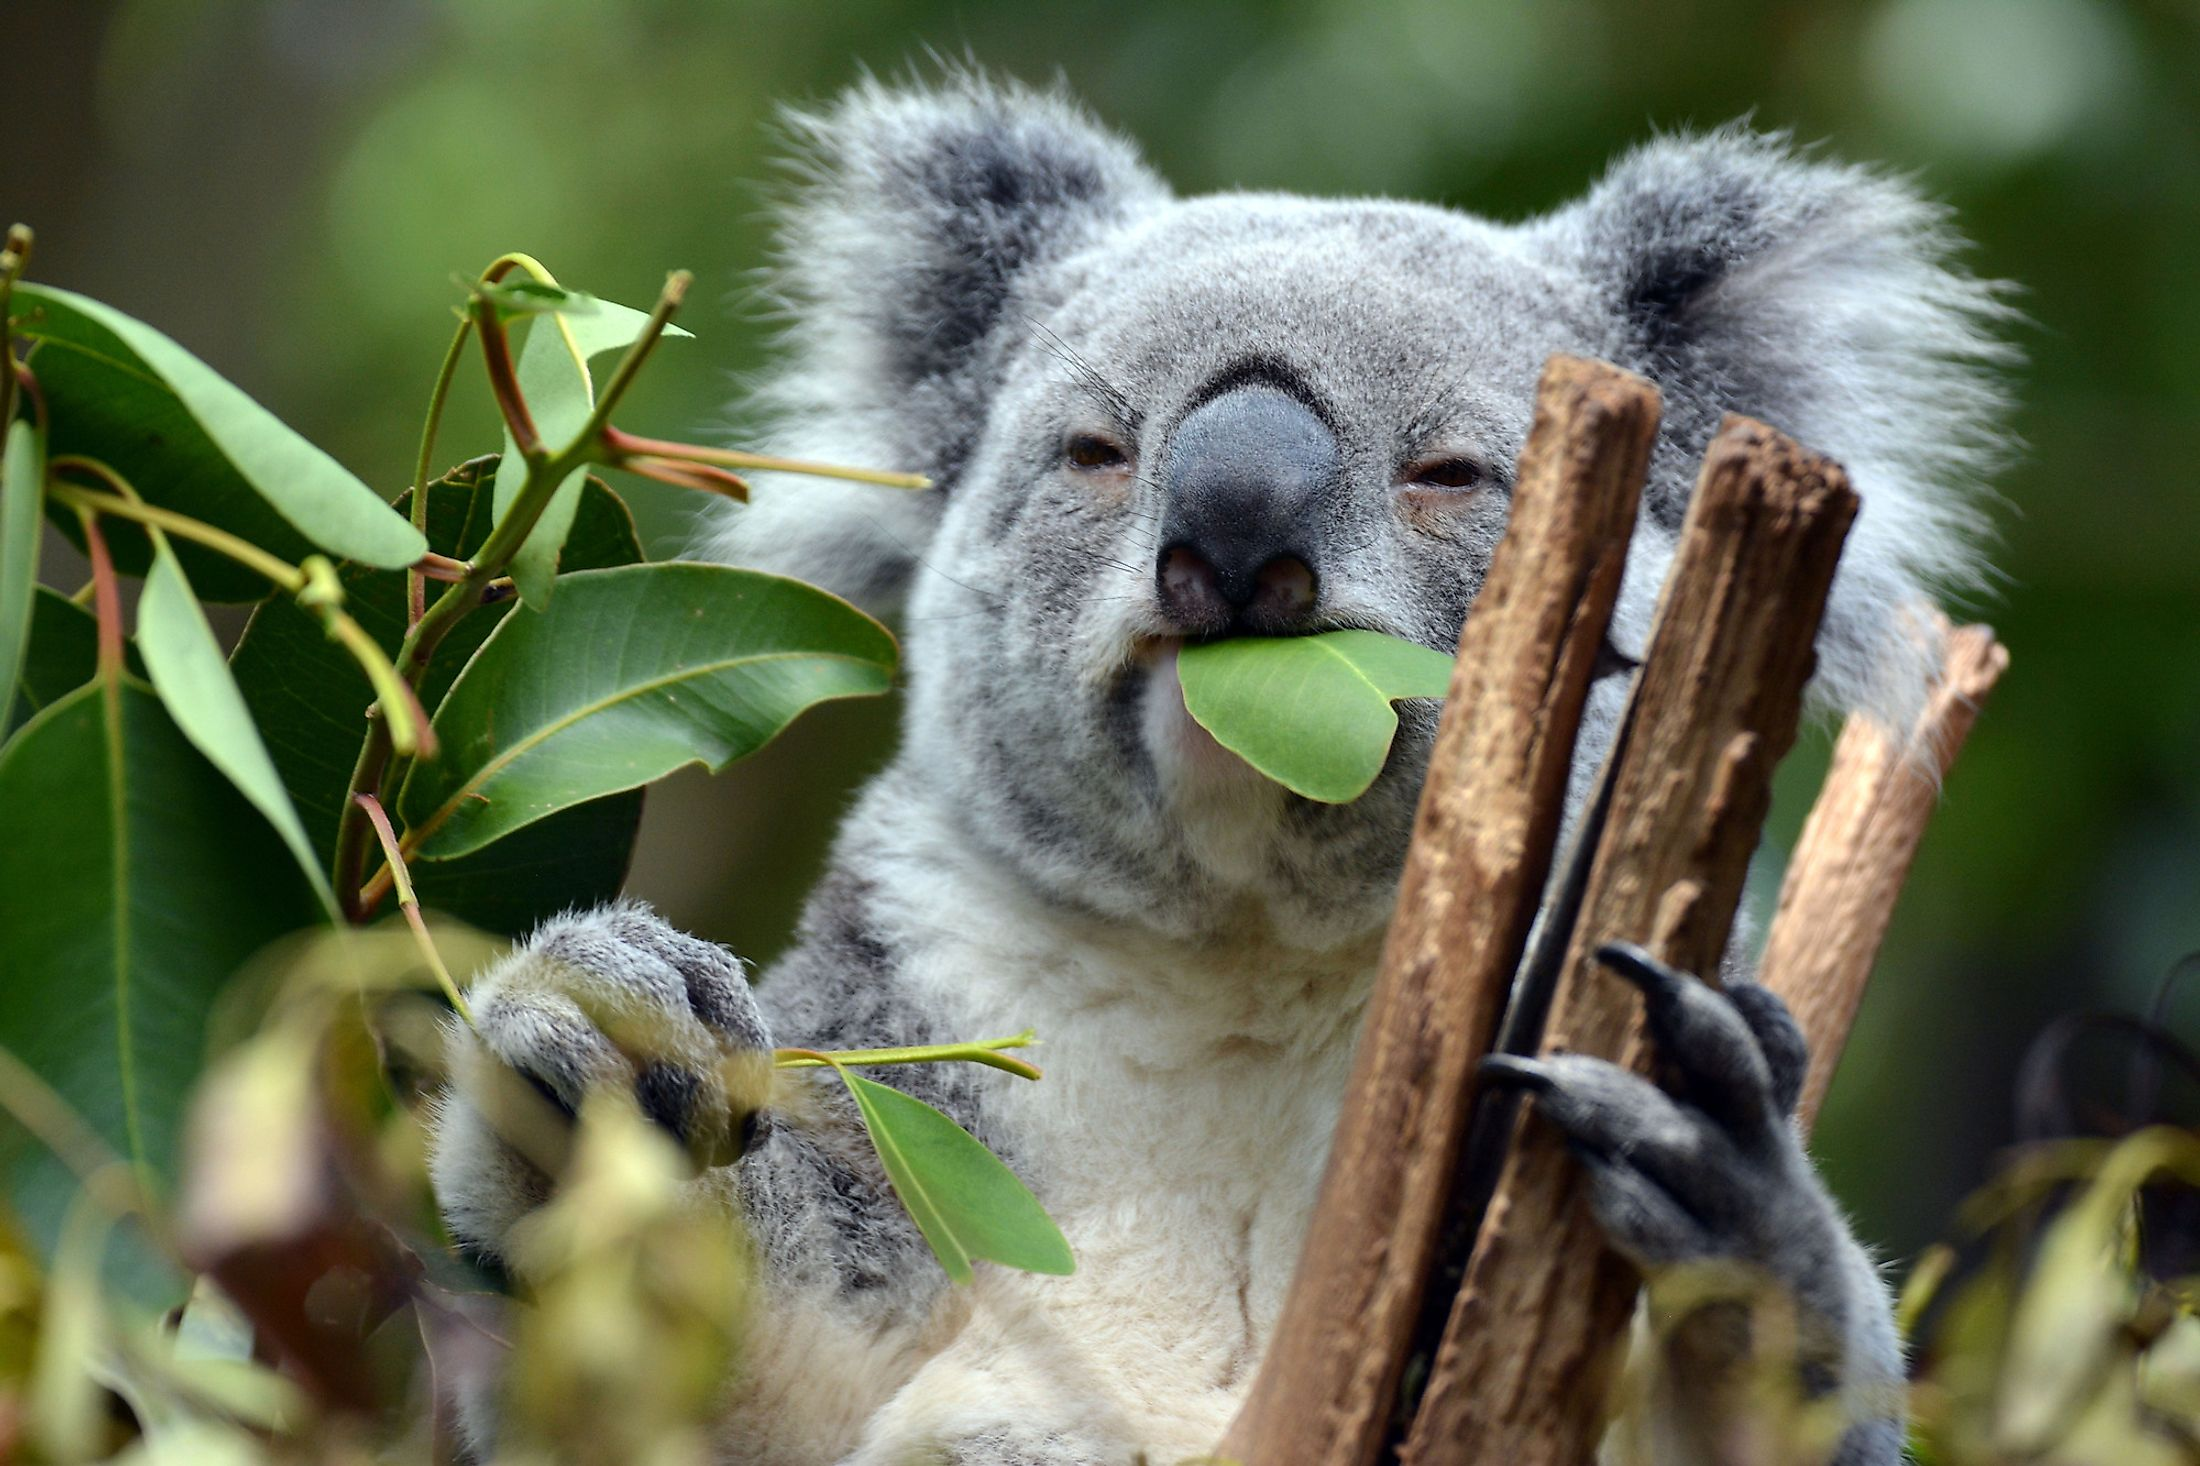 A koala feeding on eucalyptus leaves at Lone Pine Koala Sanctuary, Brisbane, Australia. Image credit: Manon van Os/Shutterstock.com